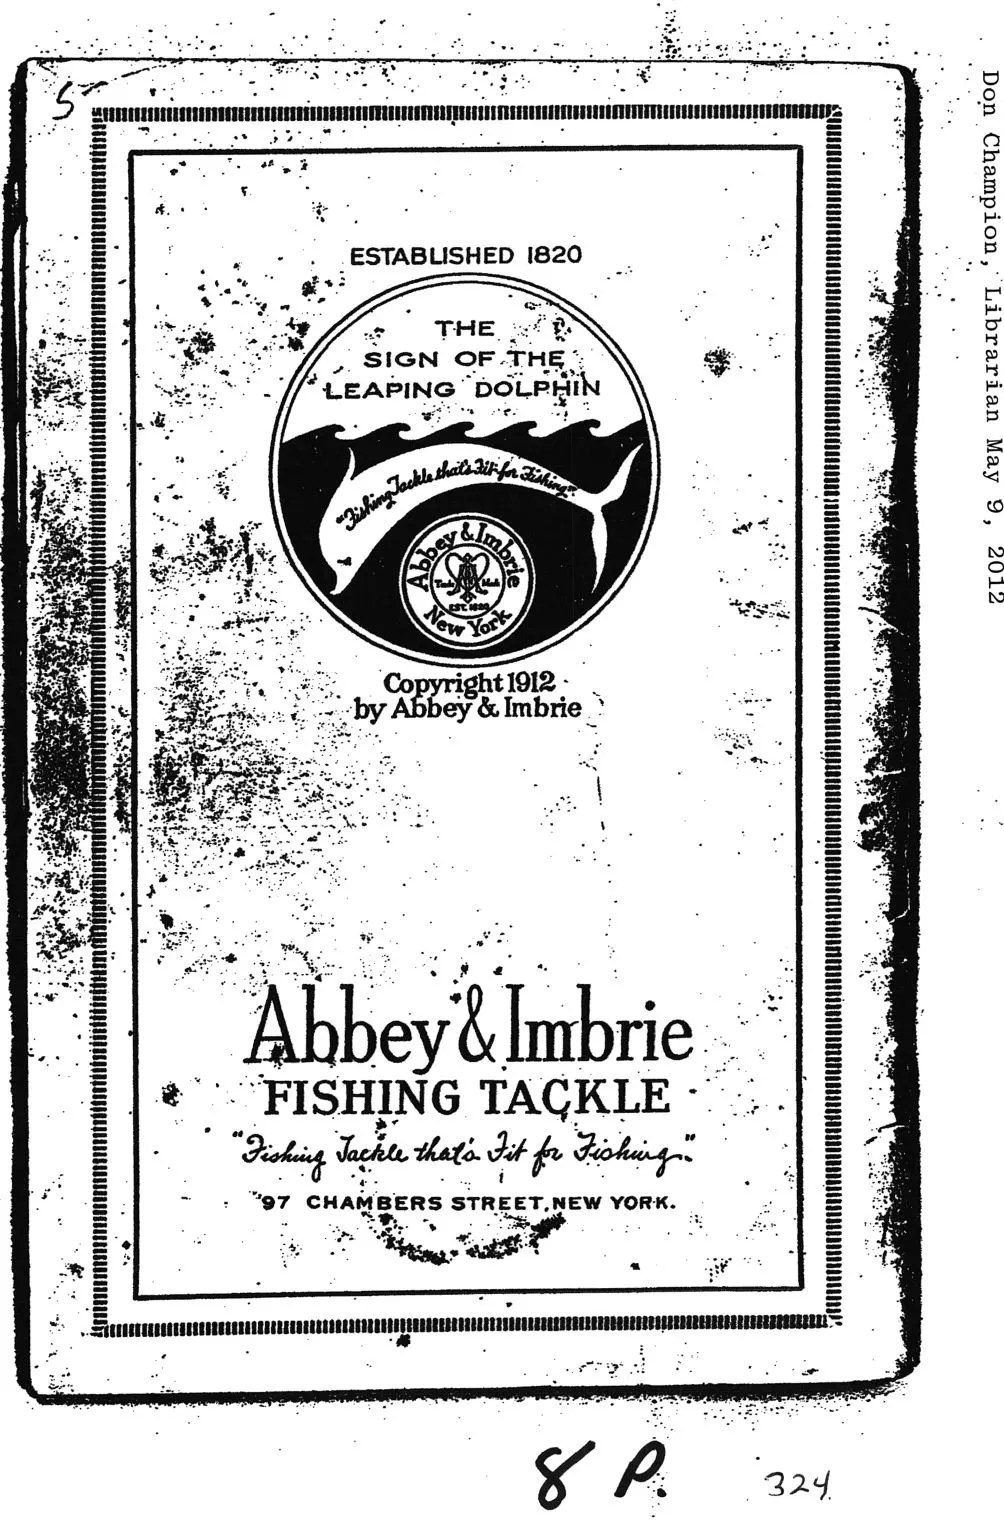 Abbey & Imbrie